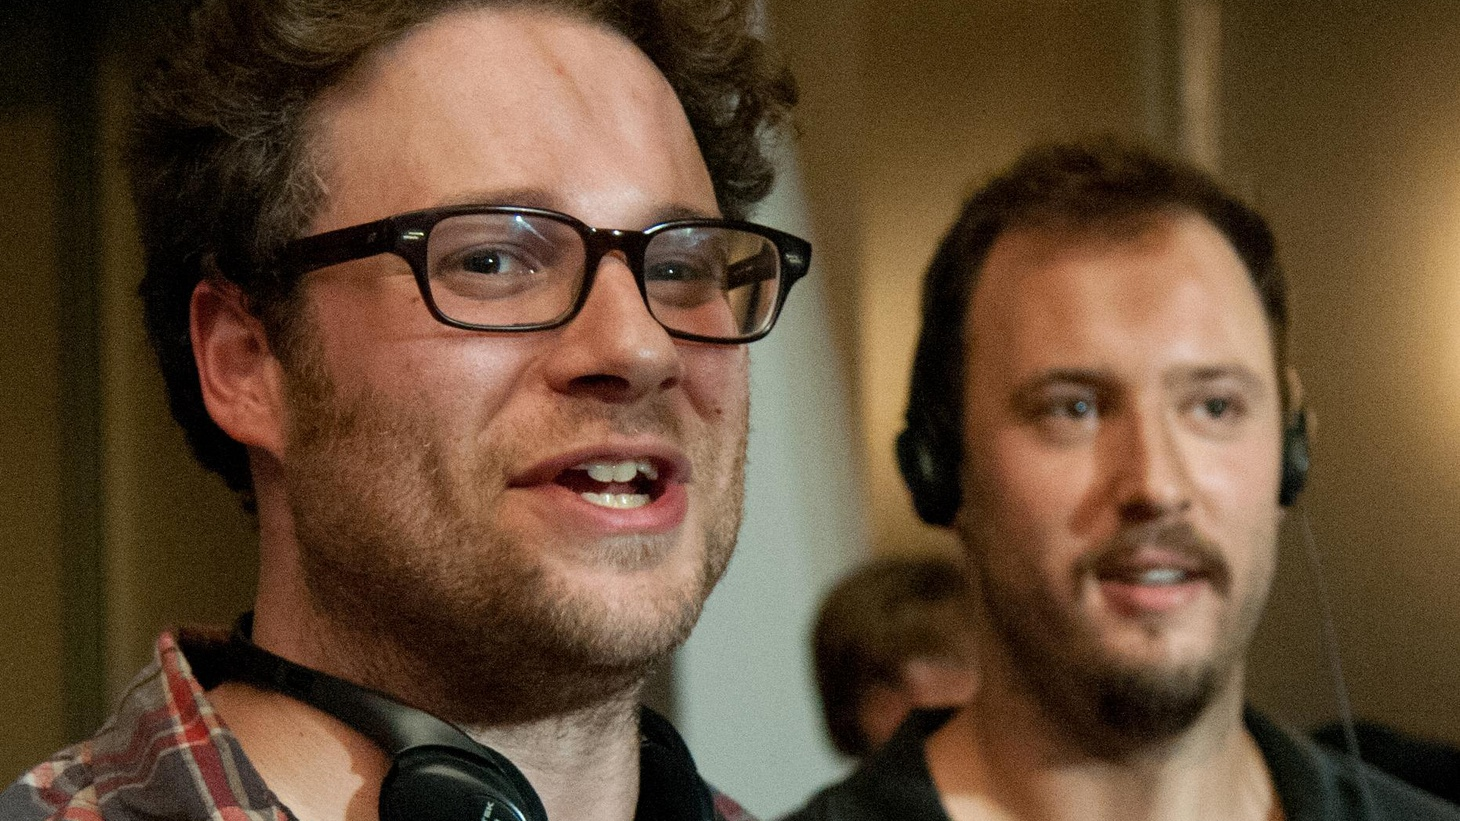 """Long time collaborators Seth Rogen and Evan Goldberg talk with John Horn about making their directorial debut, """"This Is the End."""""""